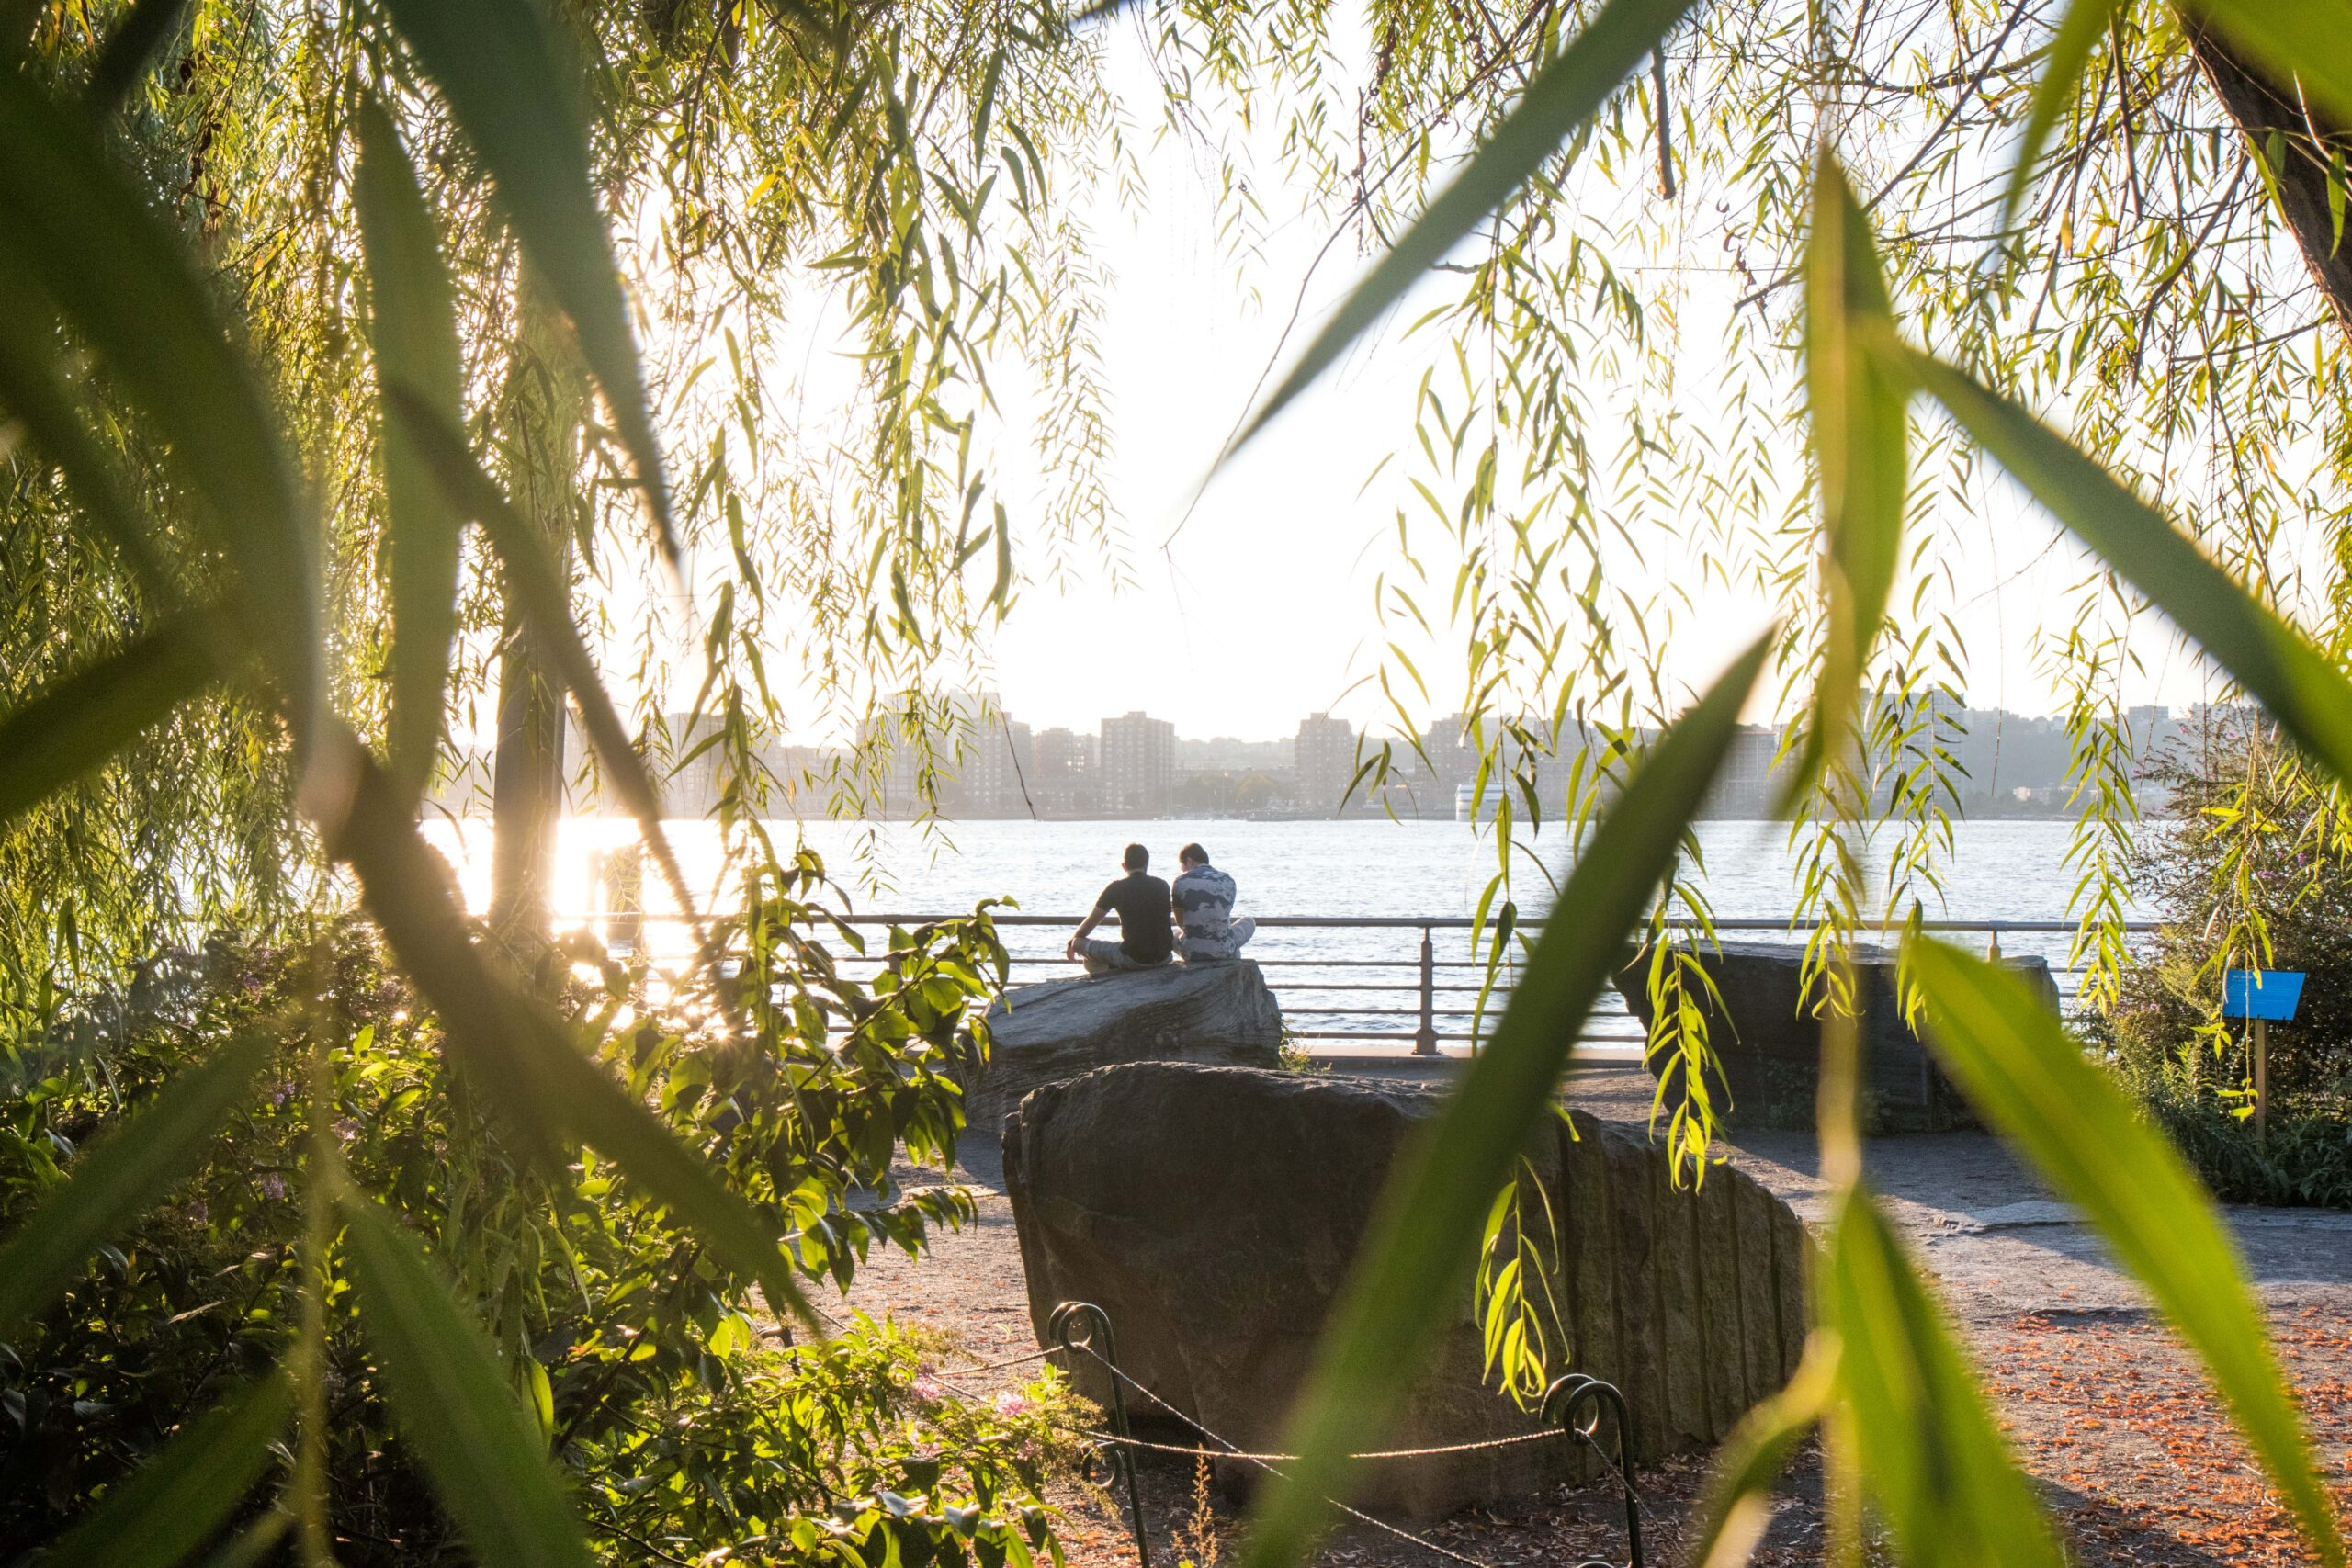 Lush greenery encloses Stonefield and Park visitors can enjoy the sunset and art near Pier 63